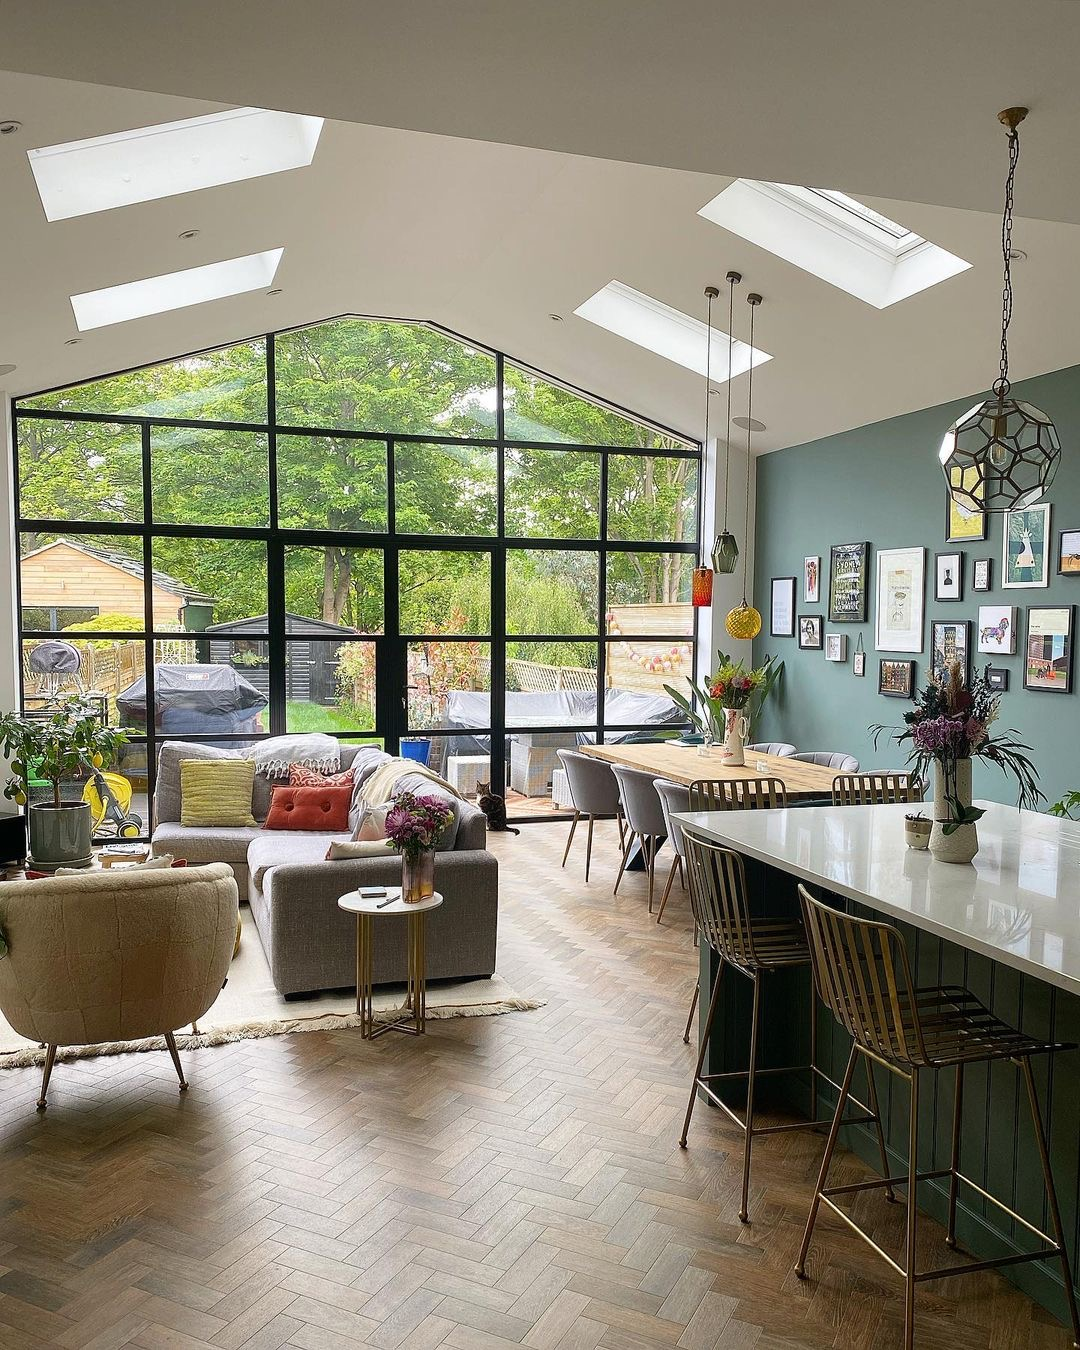 Image of a rear extension in the home of @85_wf